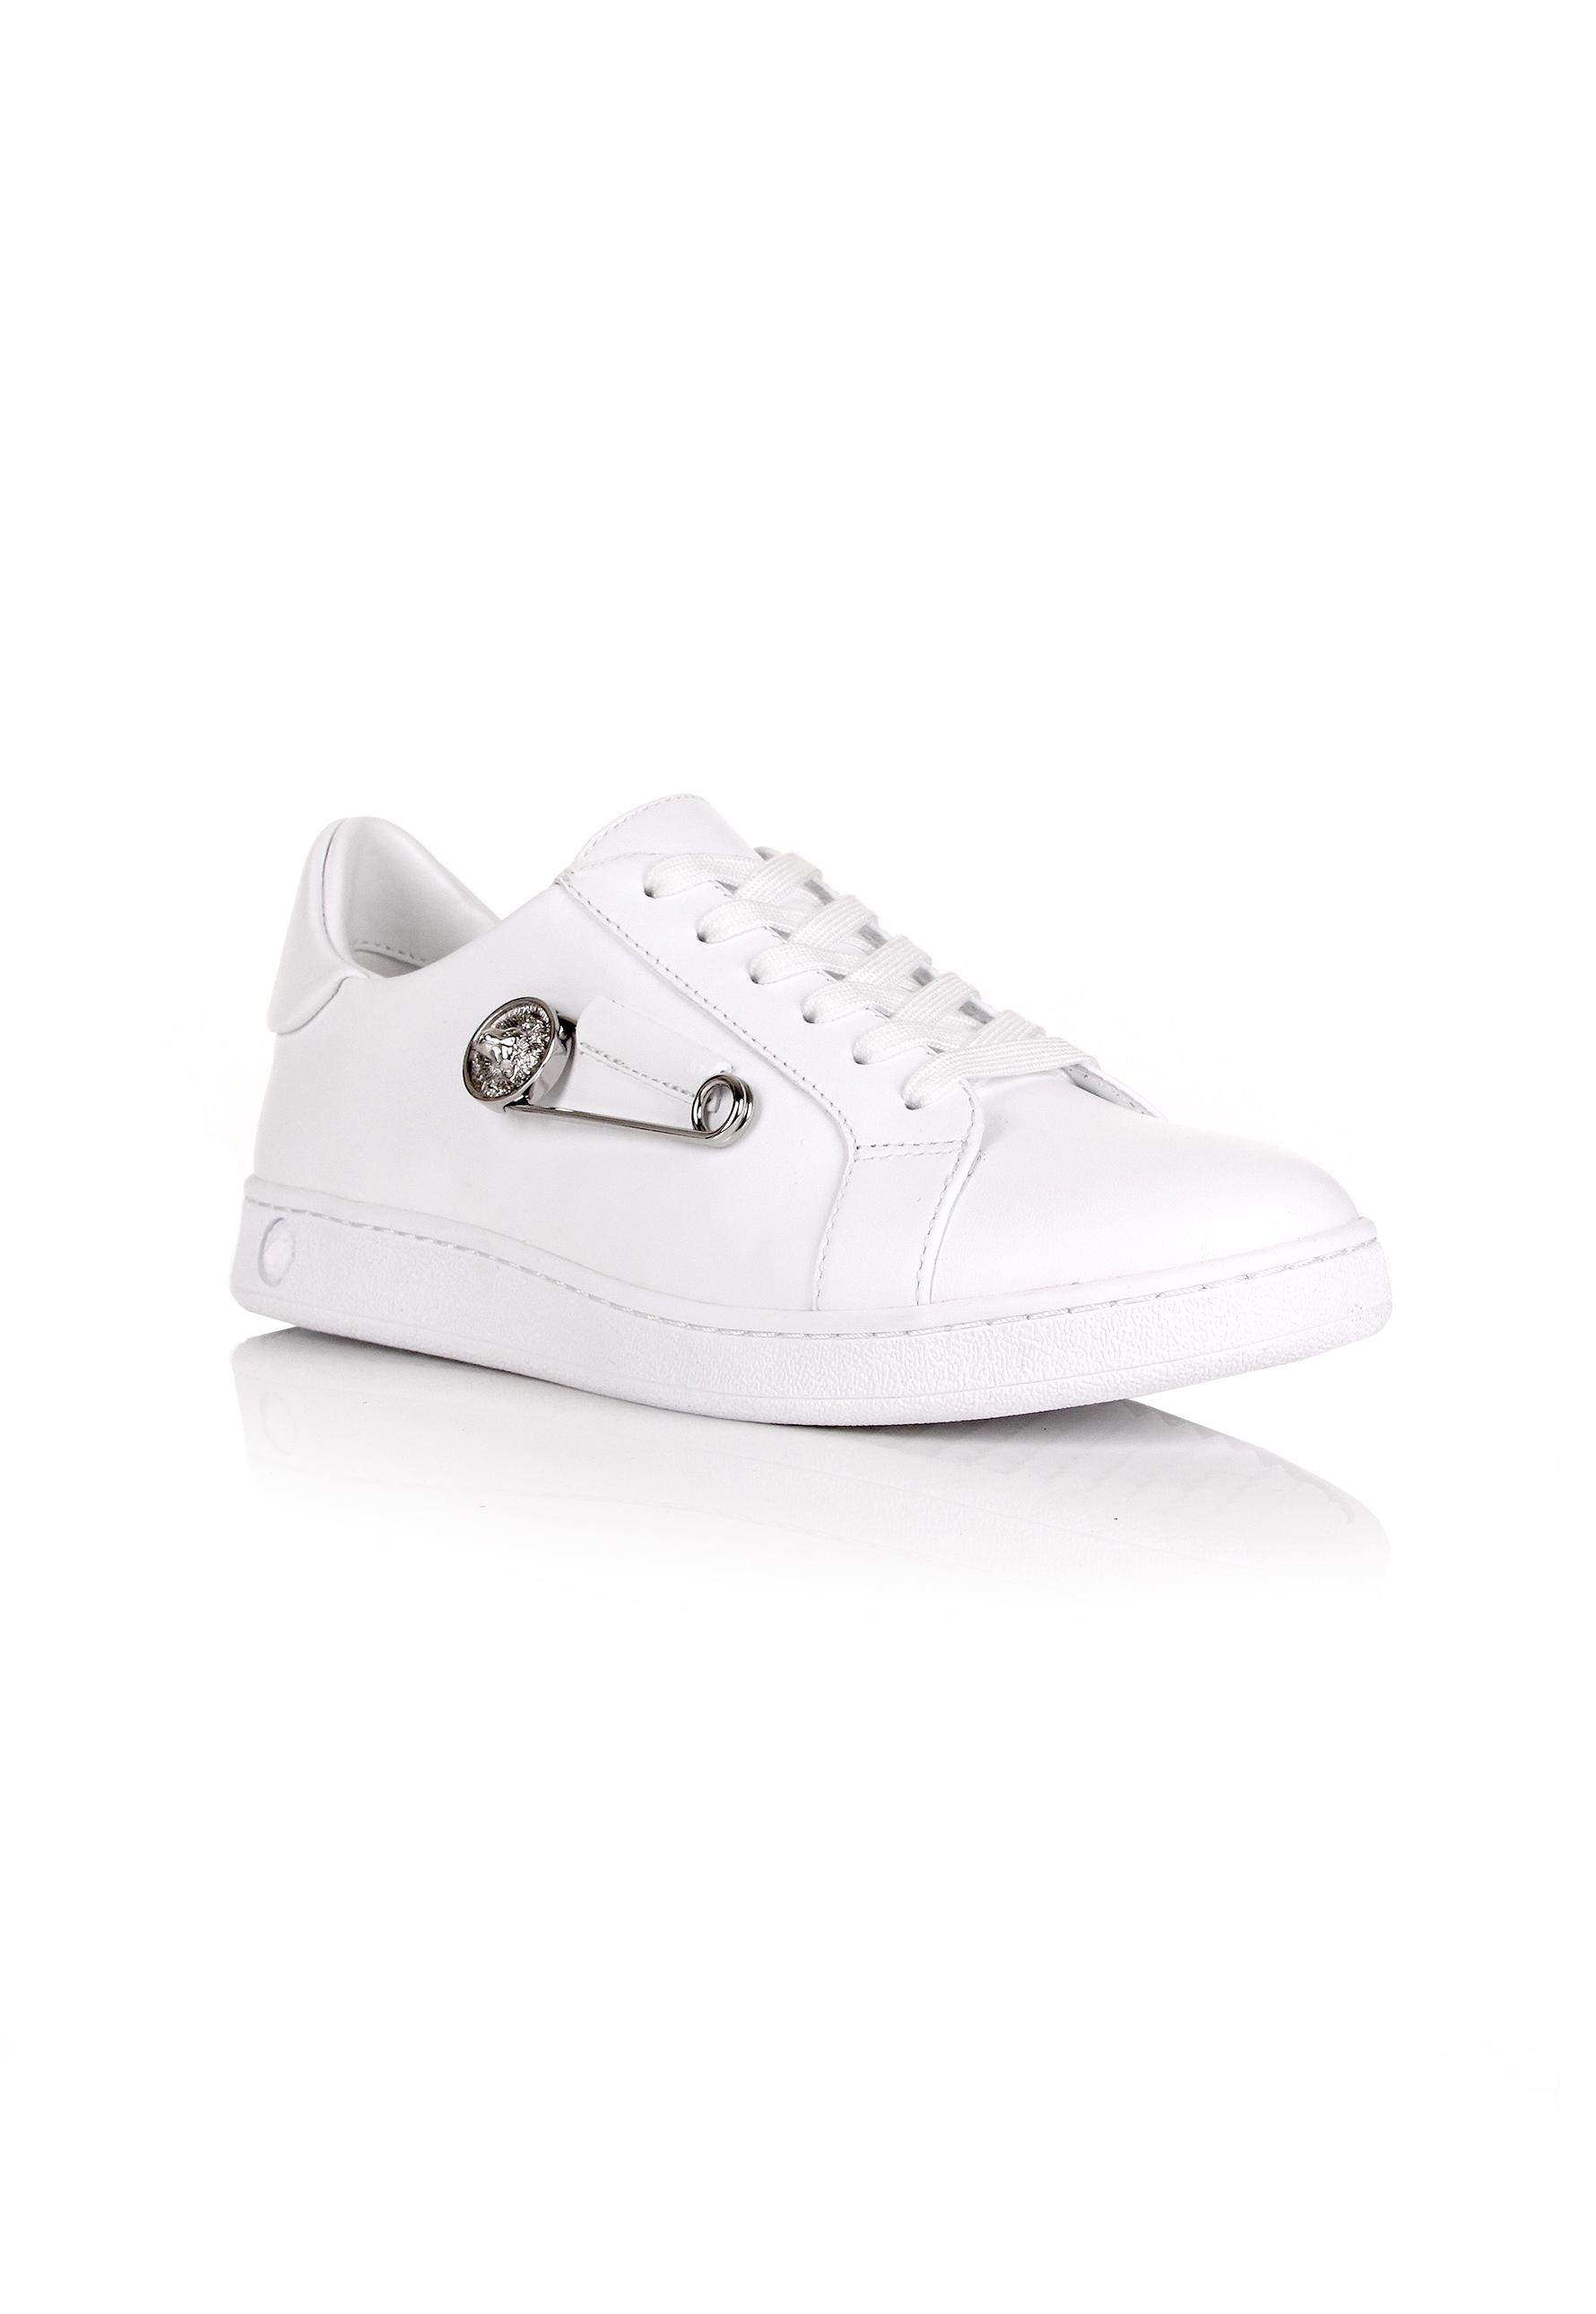 140a4b246a7c Lyst - Versus Safety Pin Sneakers White white in White for Men